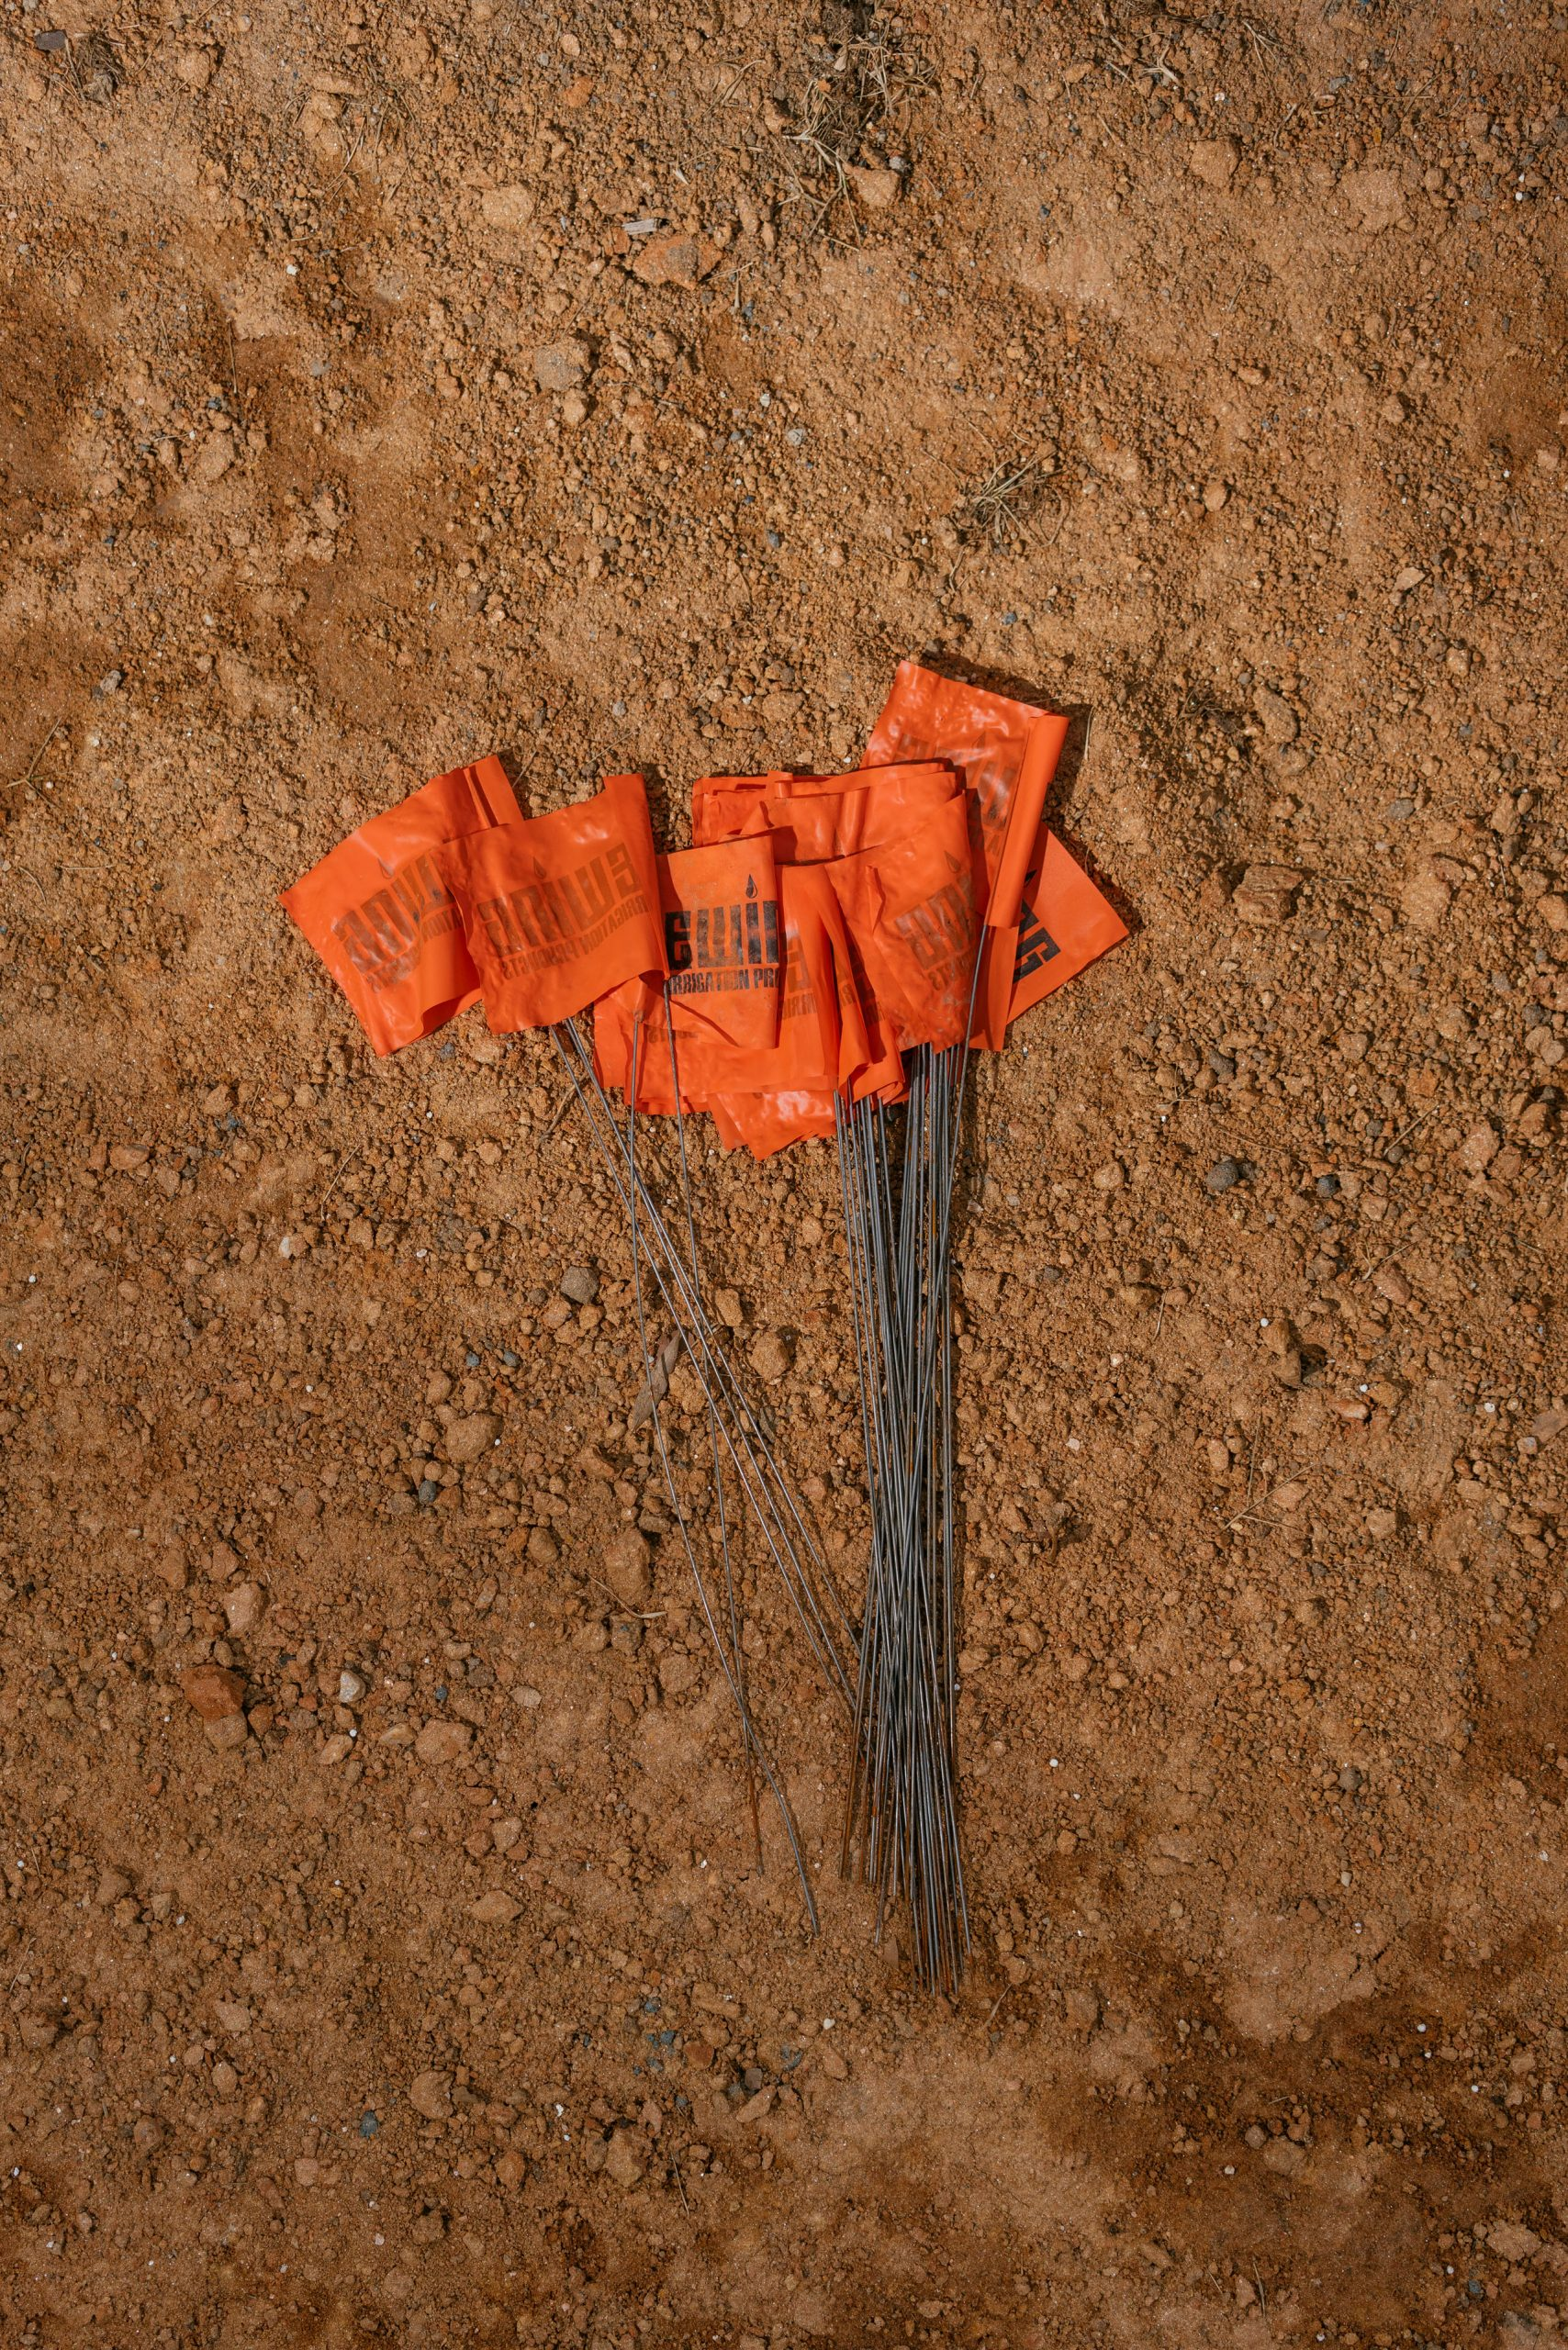 Guiding flags in dirt. Photo: Lexey Swall